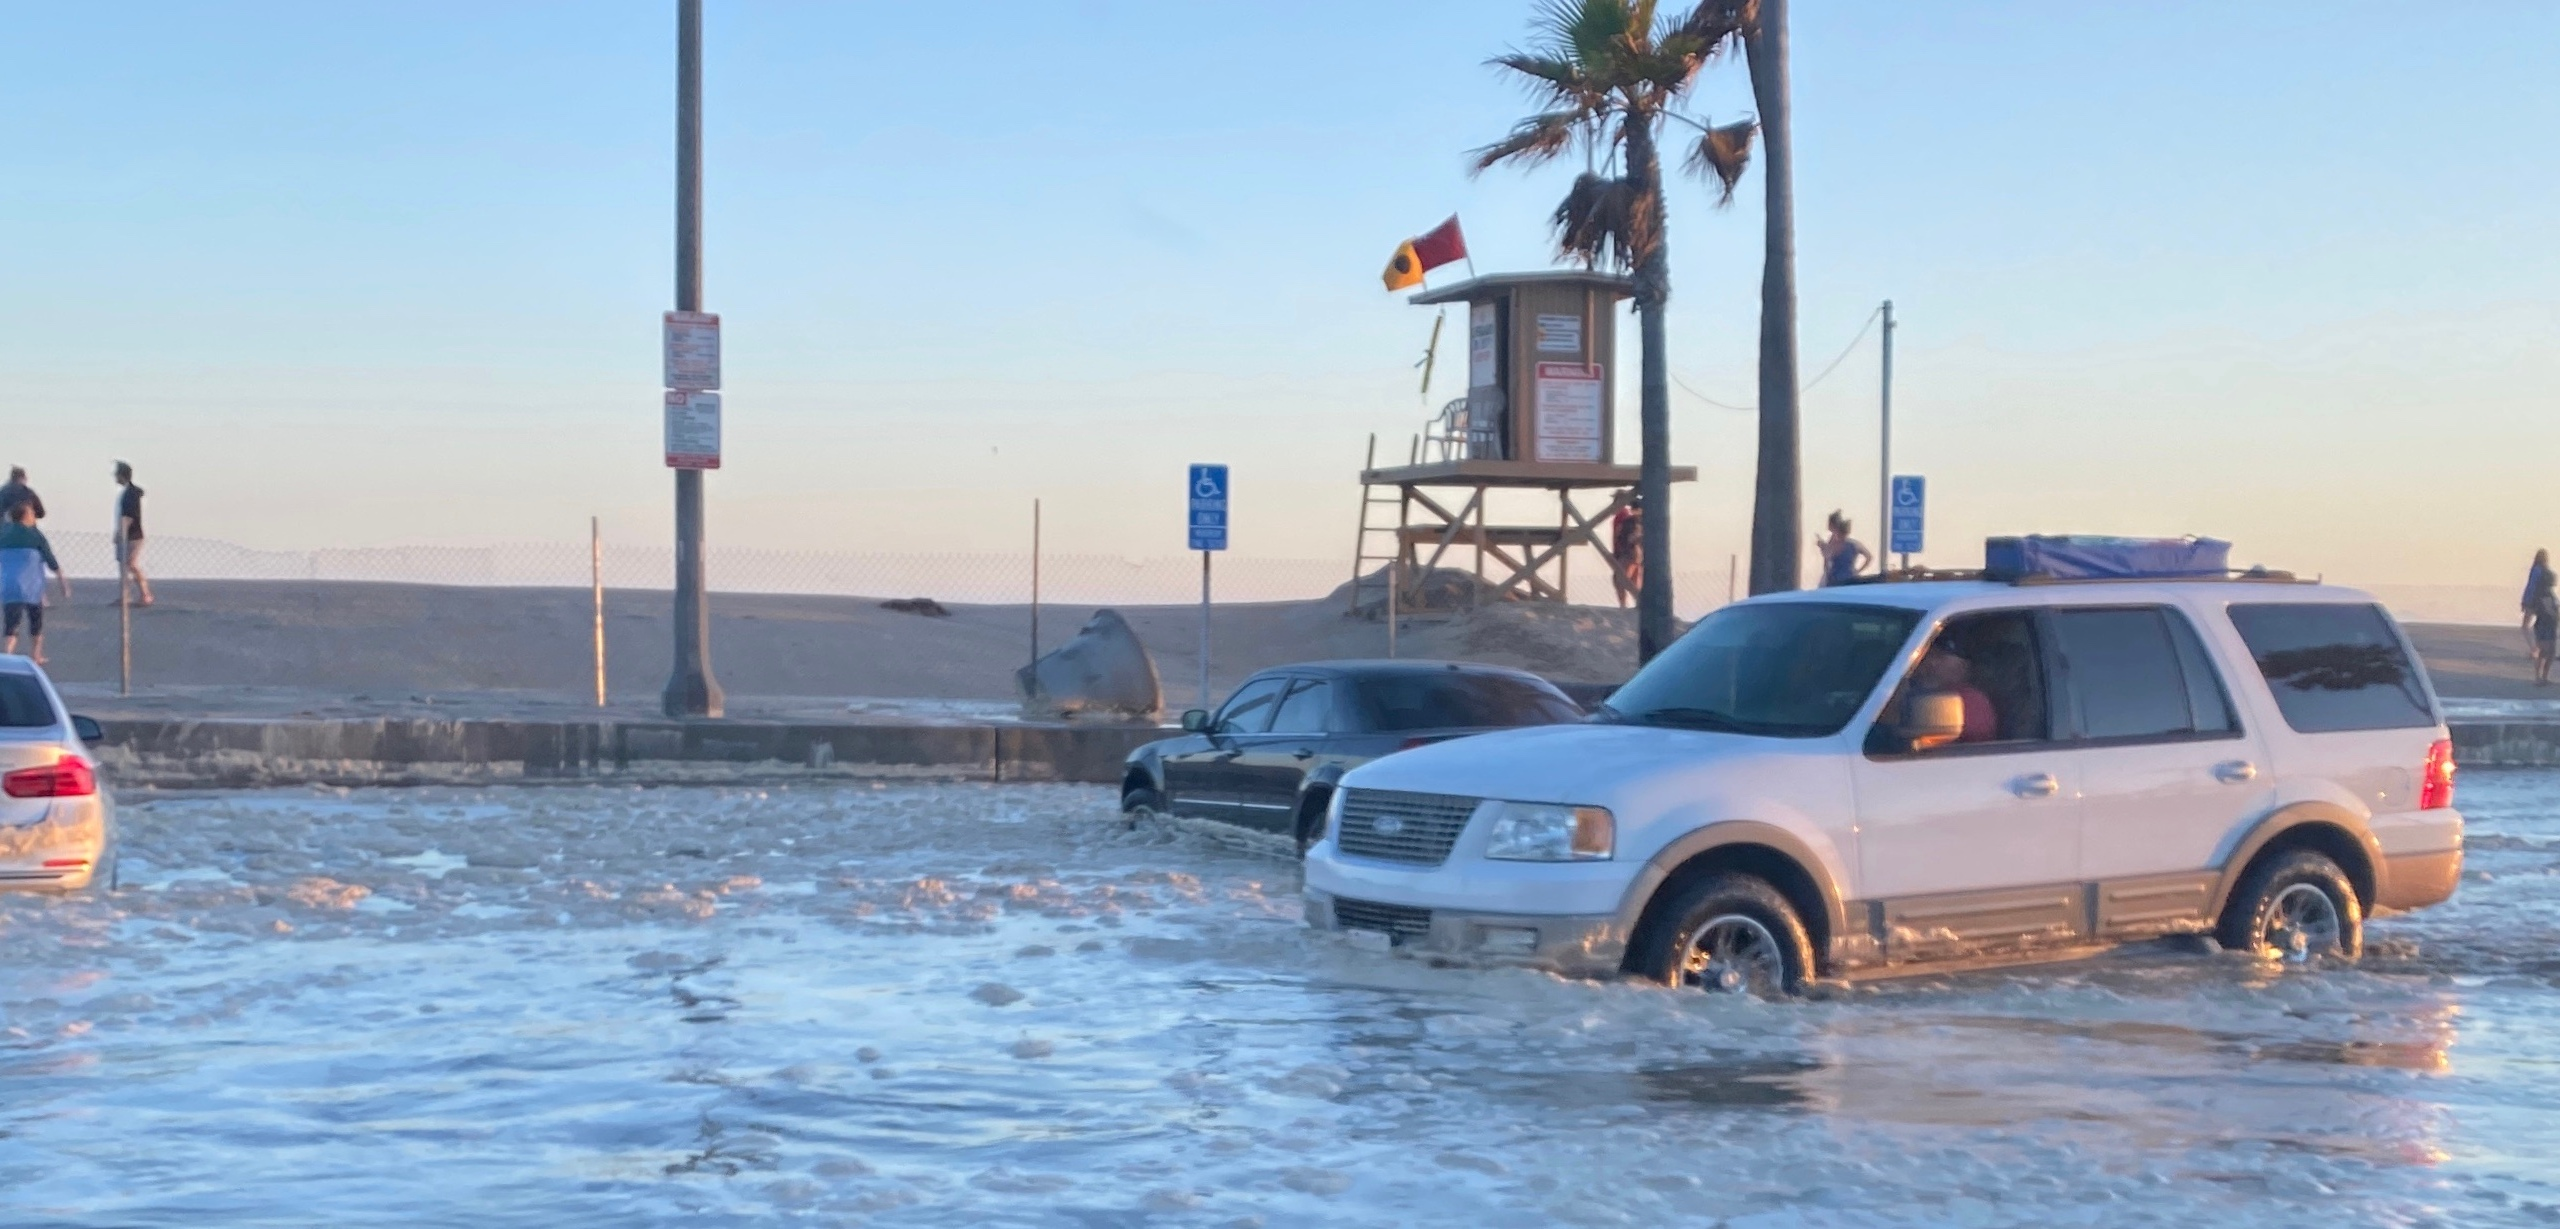 Mayor Will O'Neill of Newport Beach tweeted photos of flooding on July 3, 2020.